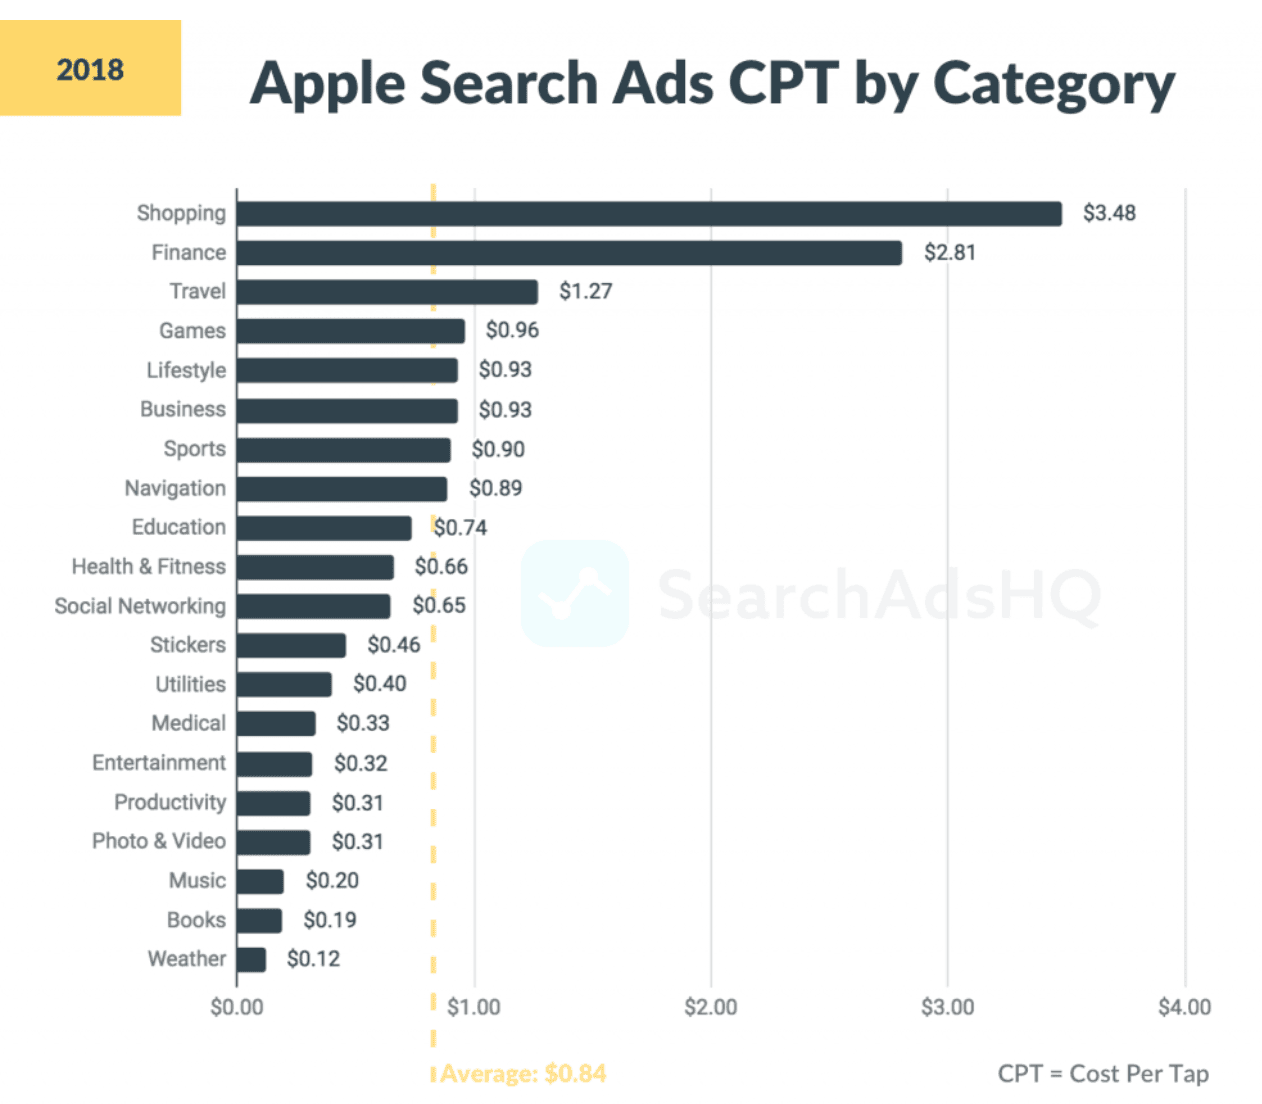 Search Ads CPT by category